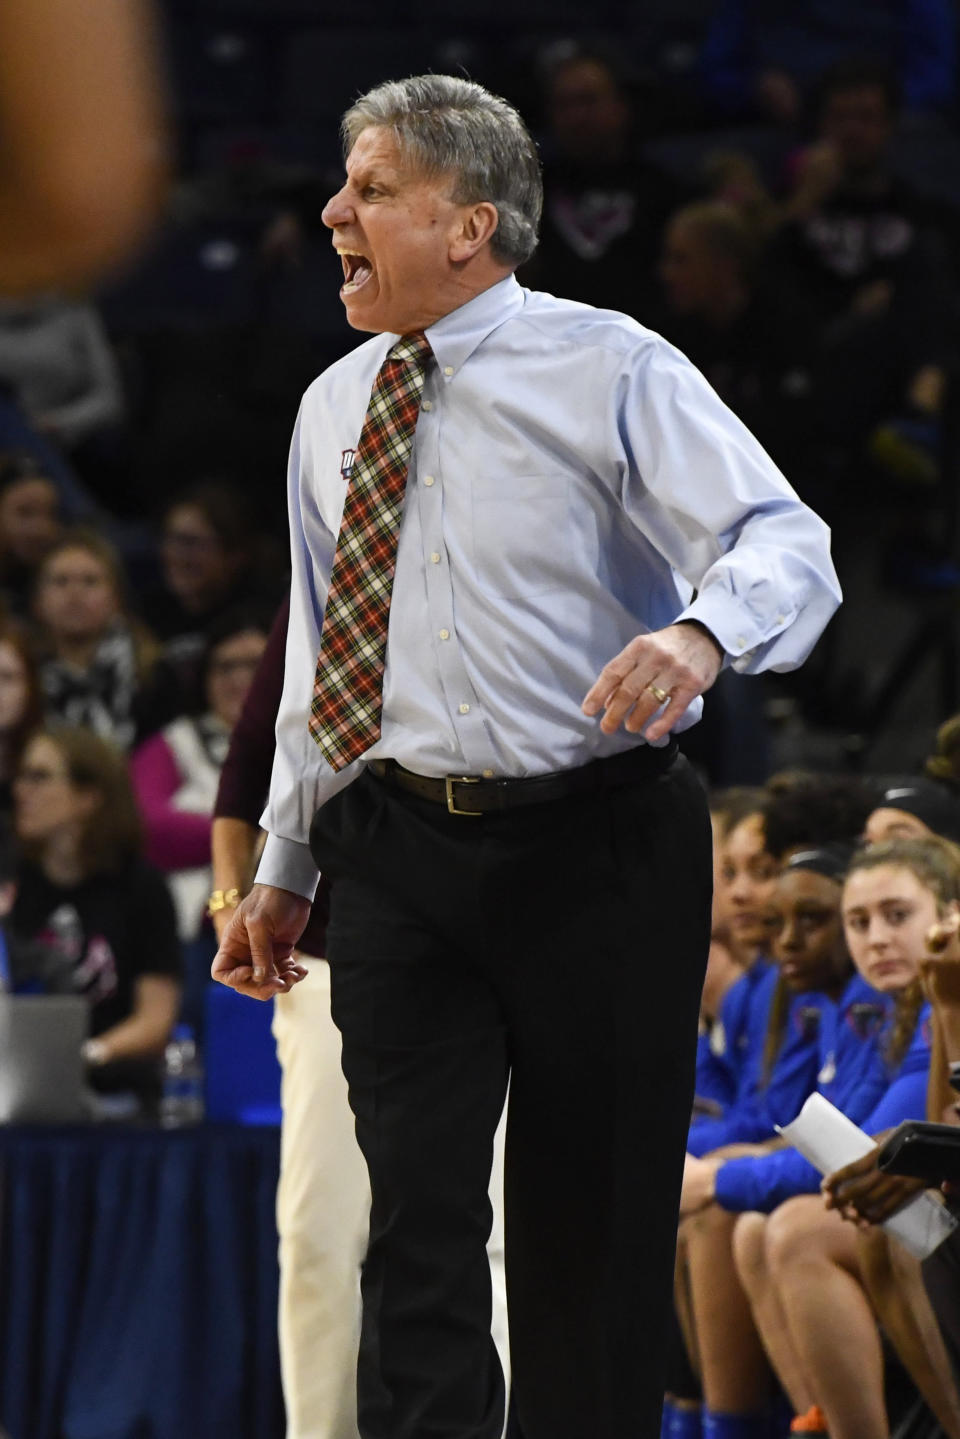 DePaul head coach Doug Bruno argues a call during the first half of an NCAA college basketball game against Connecticut on Monday, Dec. 16, 2019. in Chicago, Ill. (AP Photo/Matt Marton)